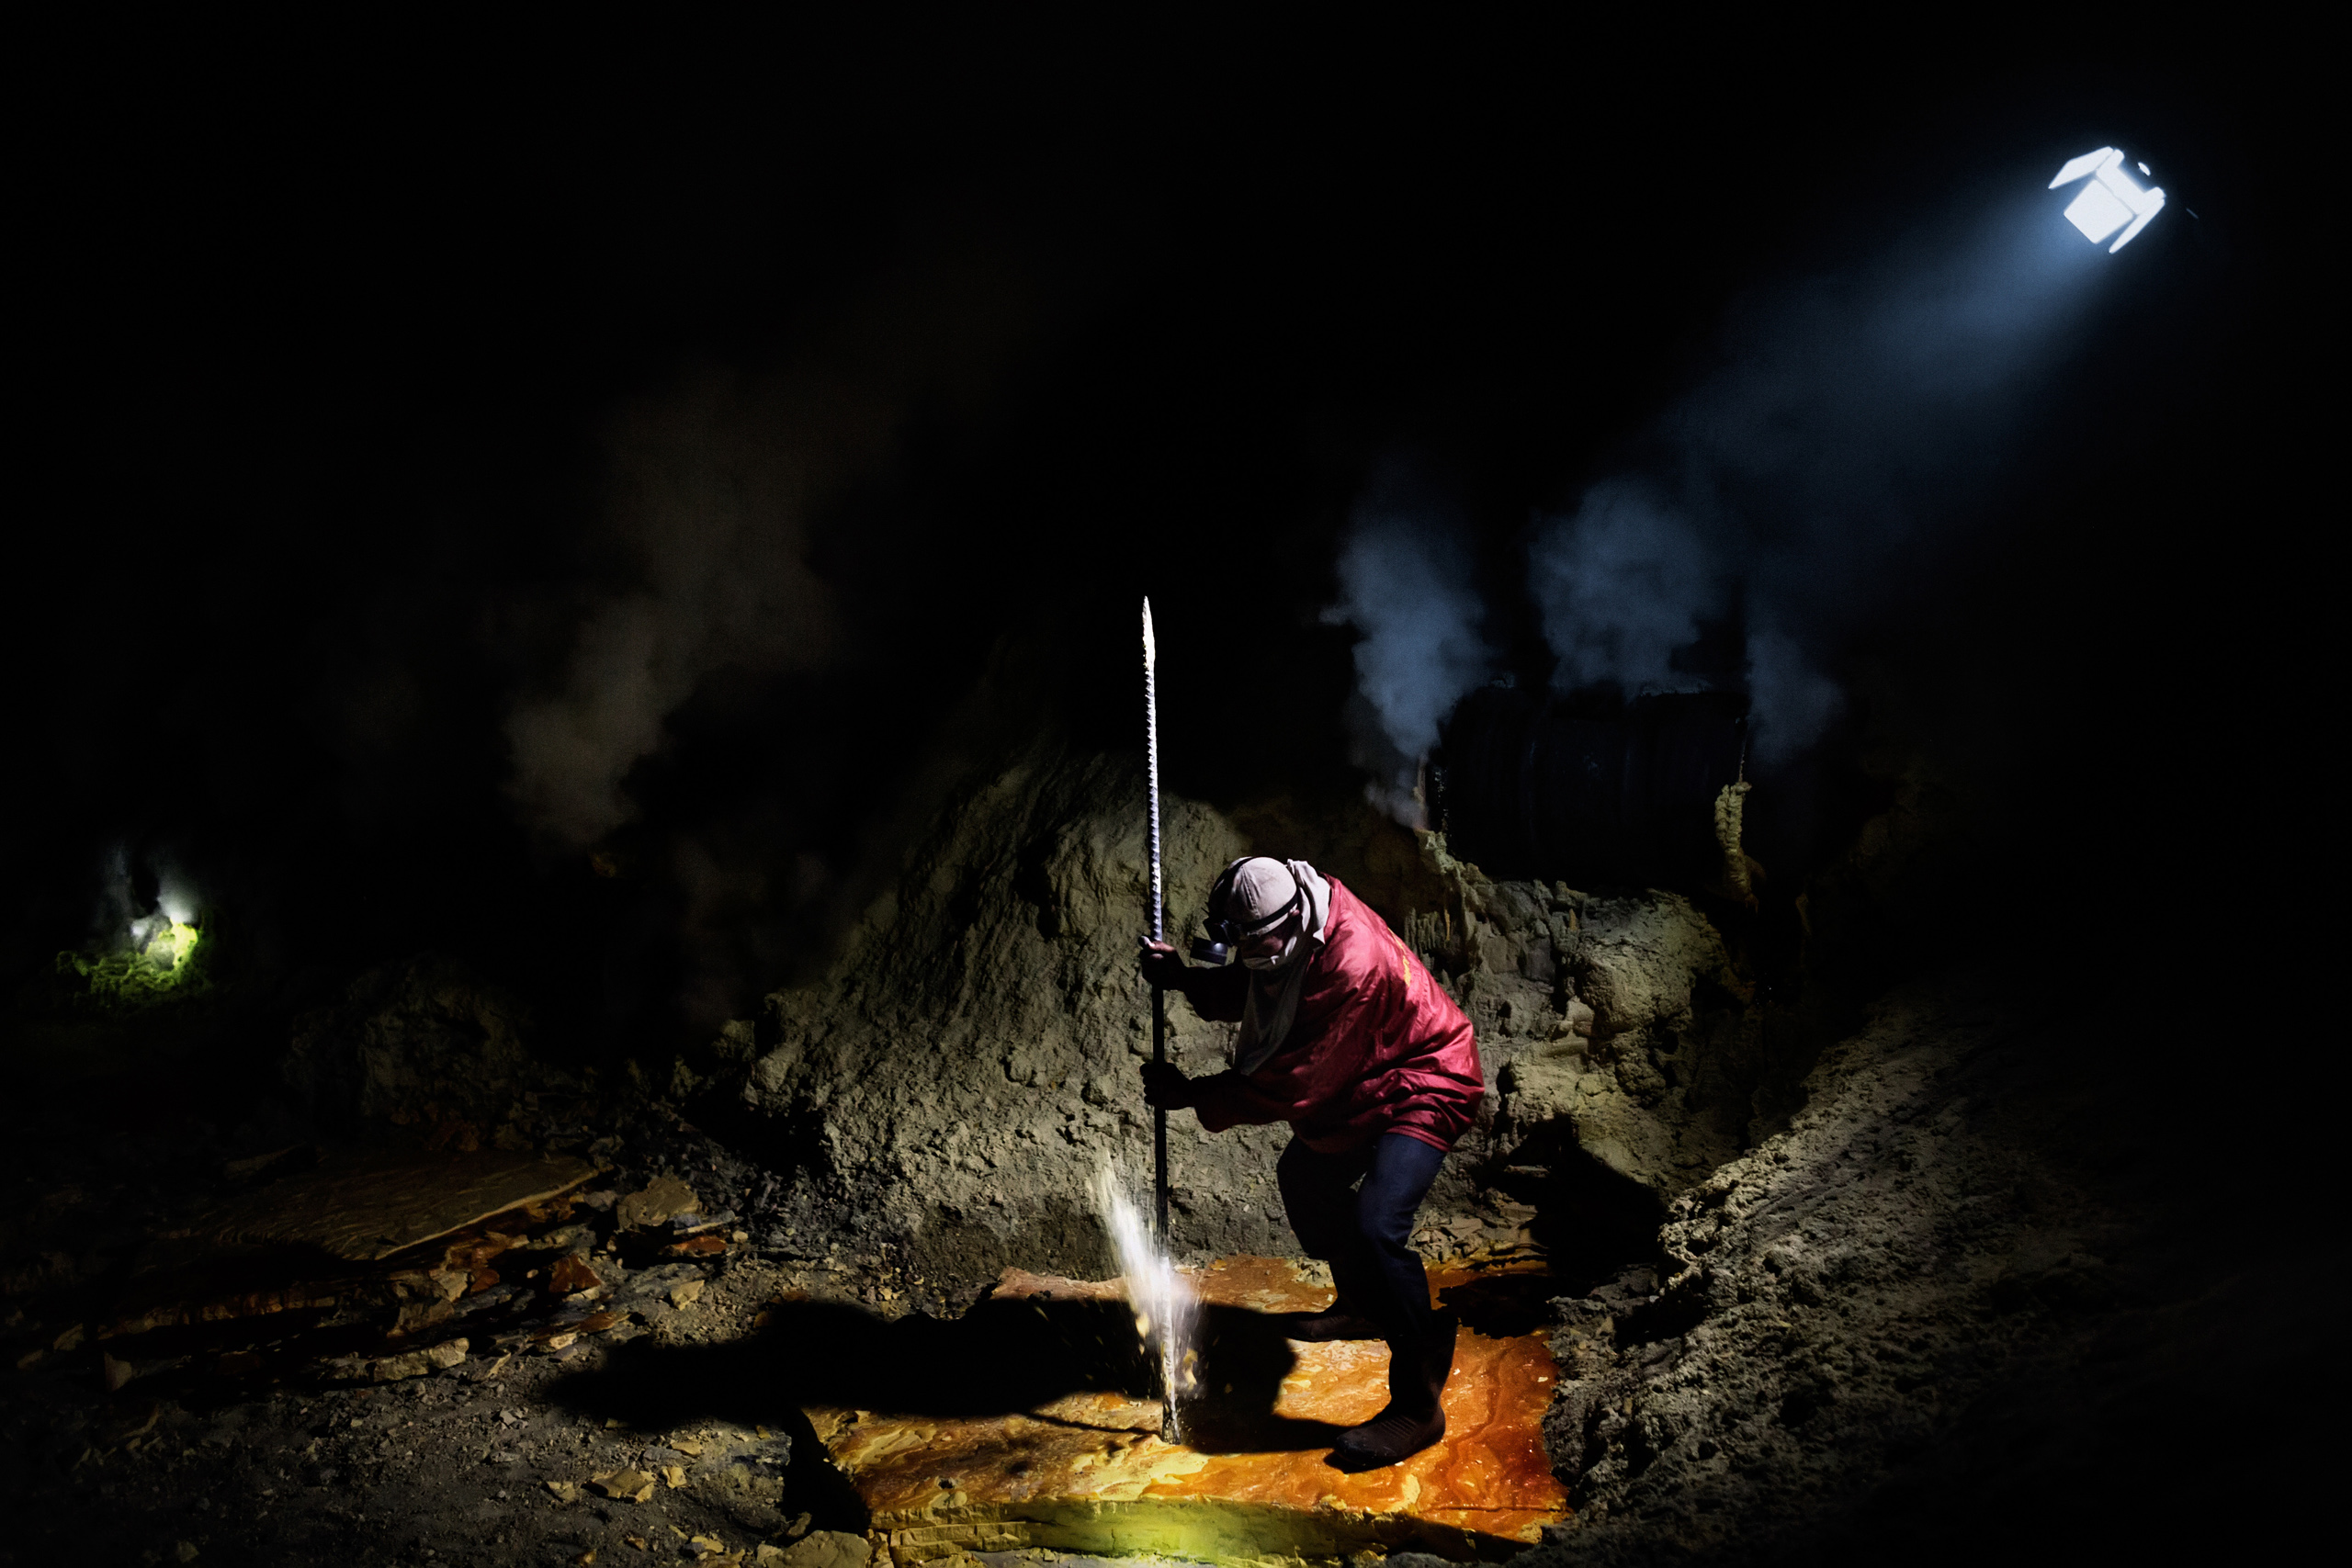 Poniman, 35, breaks the sulfur slabs using a metal pole, Nov. 2, 2014.